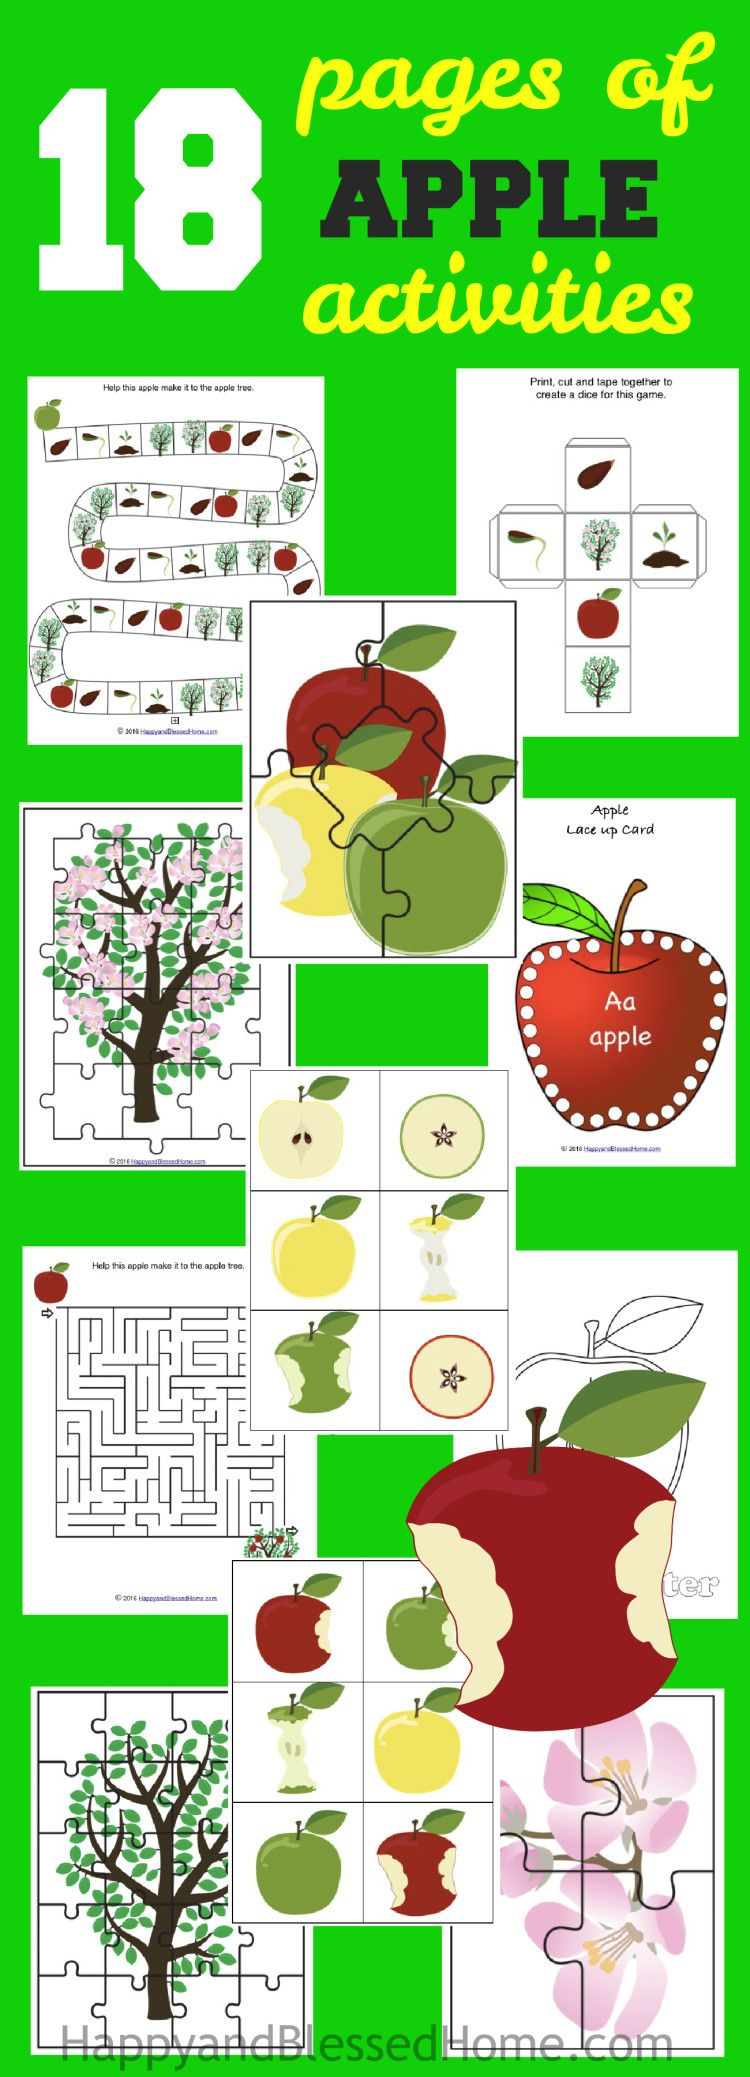 Delicious Apple Recipes | Apple activities, Free worksheets and Game ...